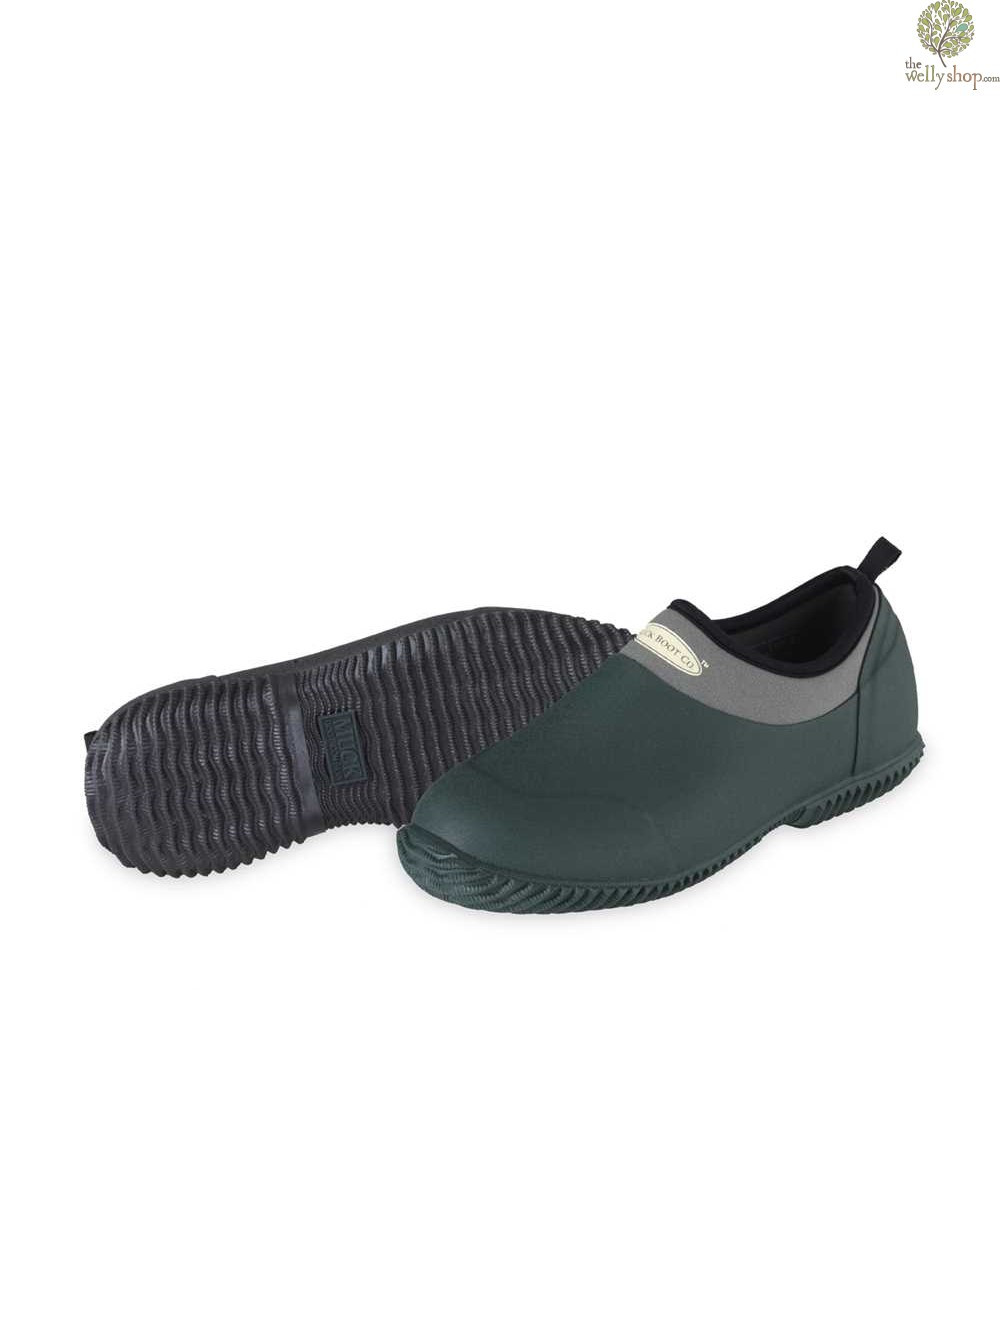 Superb ... Waterproof Neoprene Gardening Shoes. Muck ...